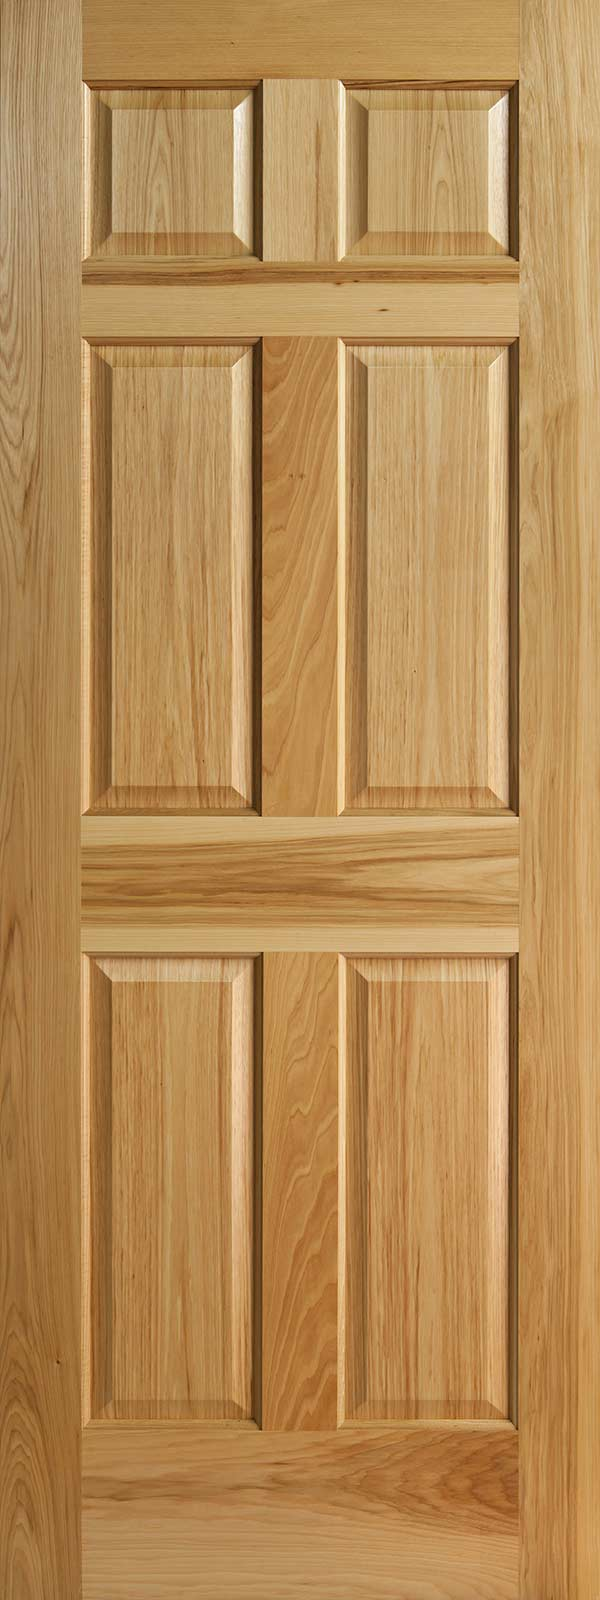 High Quality Hickory 6 Panel Wood Interior Door